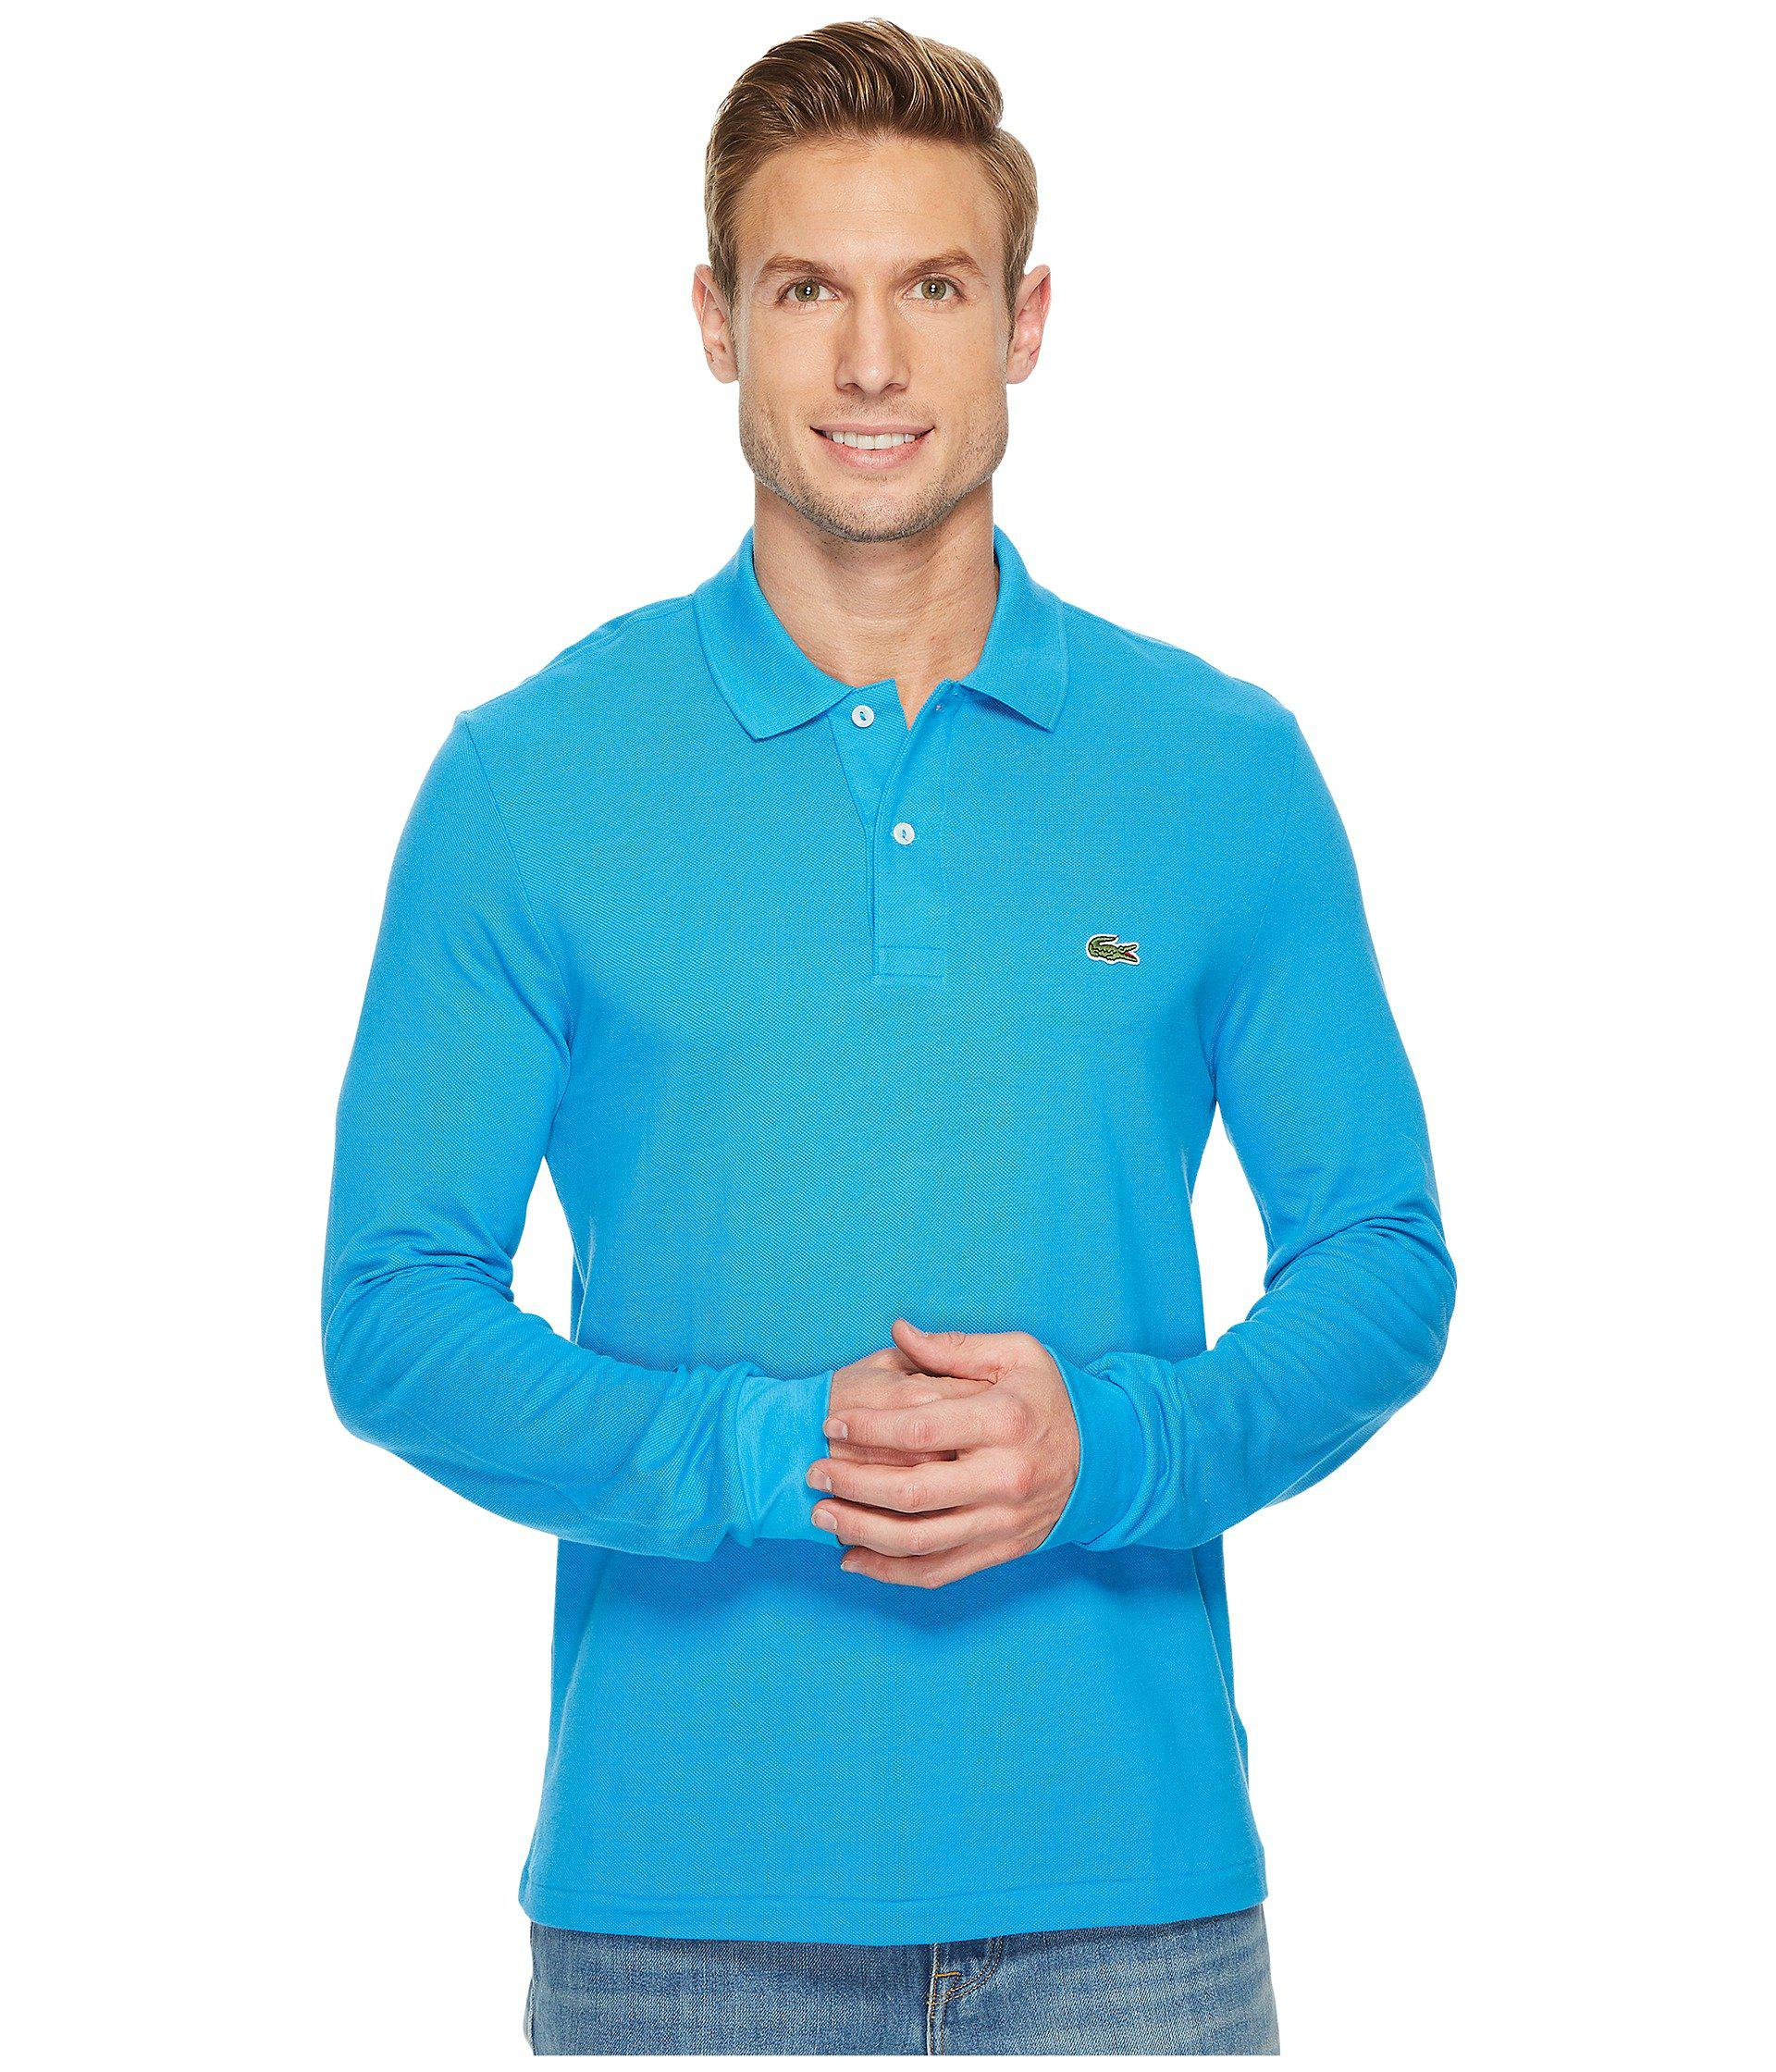 c9988ee8 Lyst - Lacoste L/s Classic Pique Polo in Blue for Men